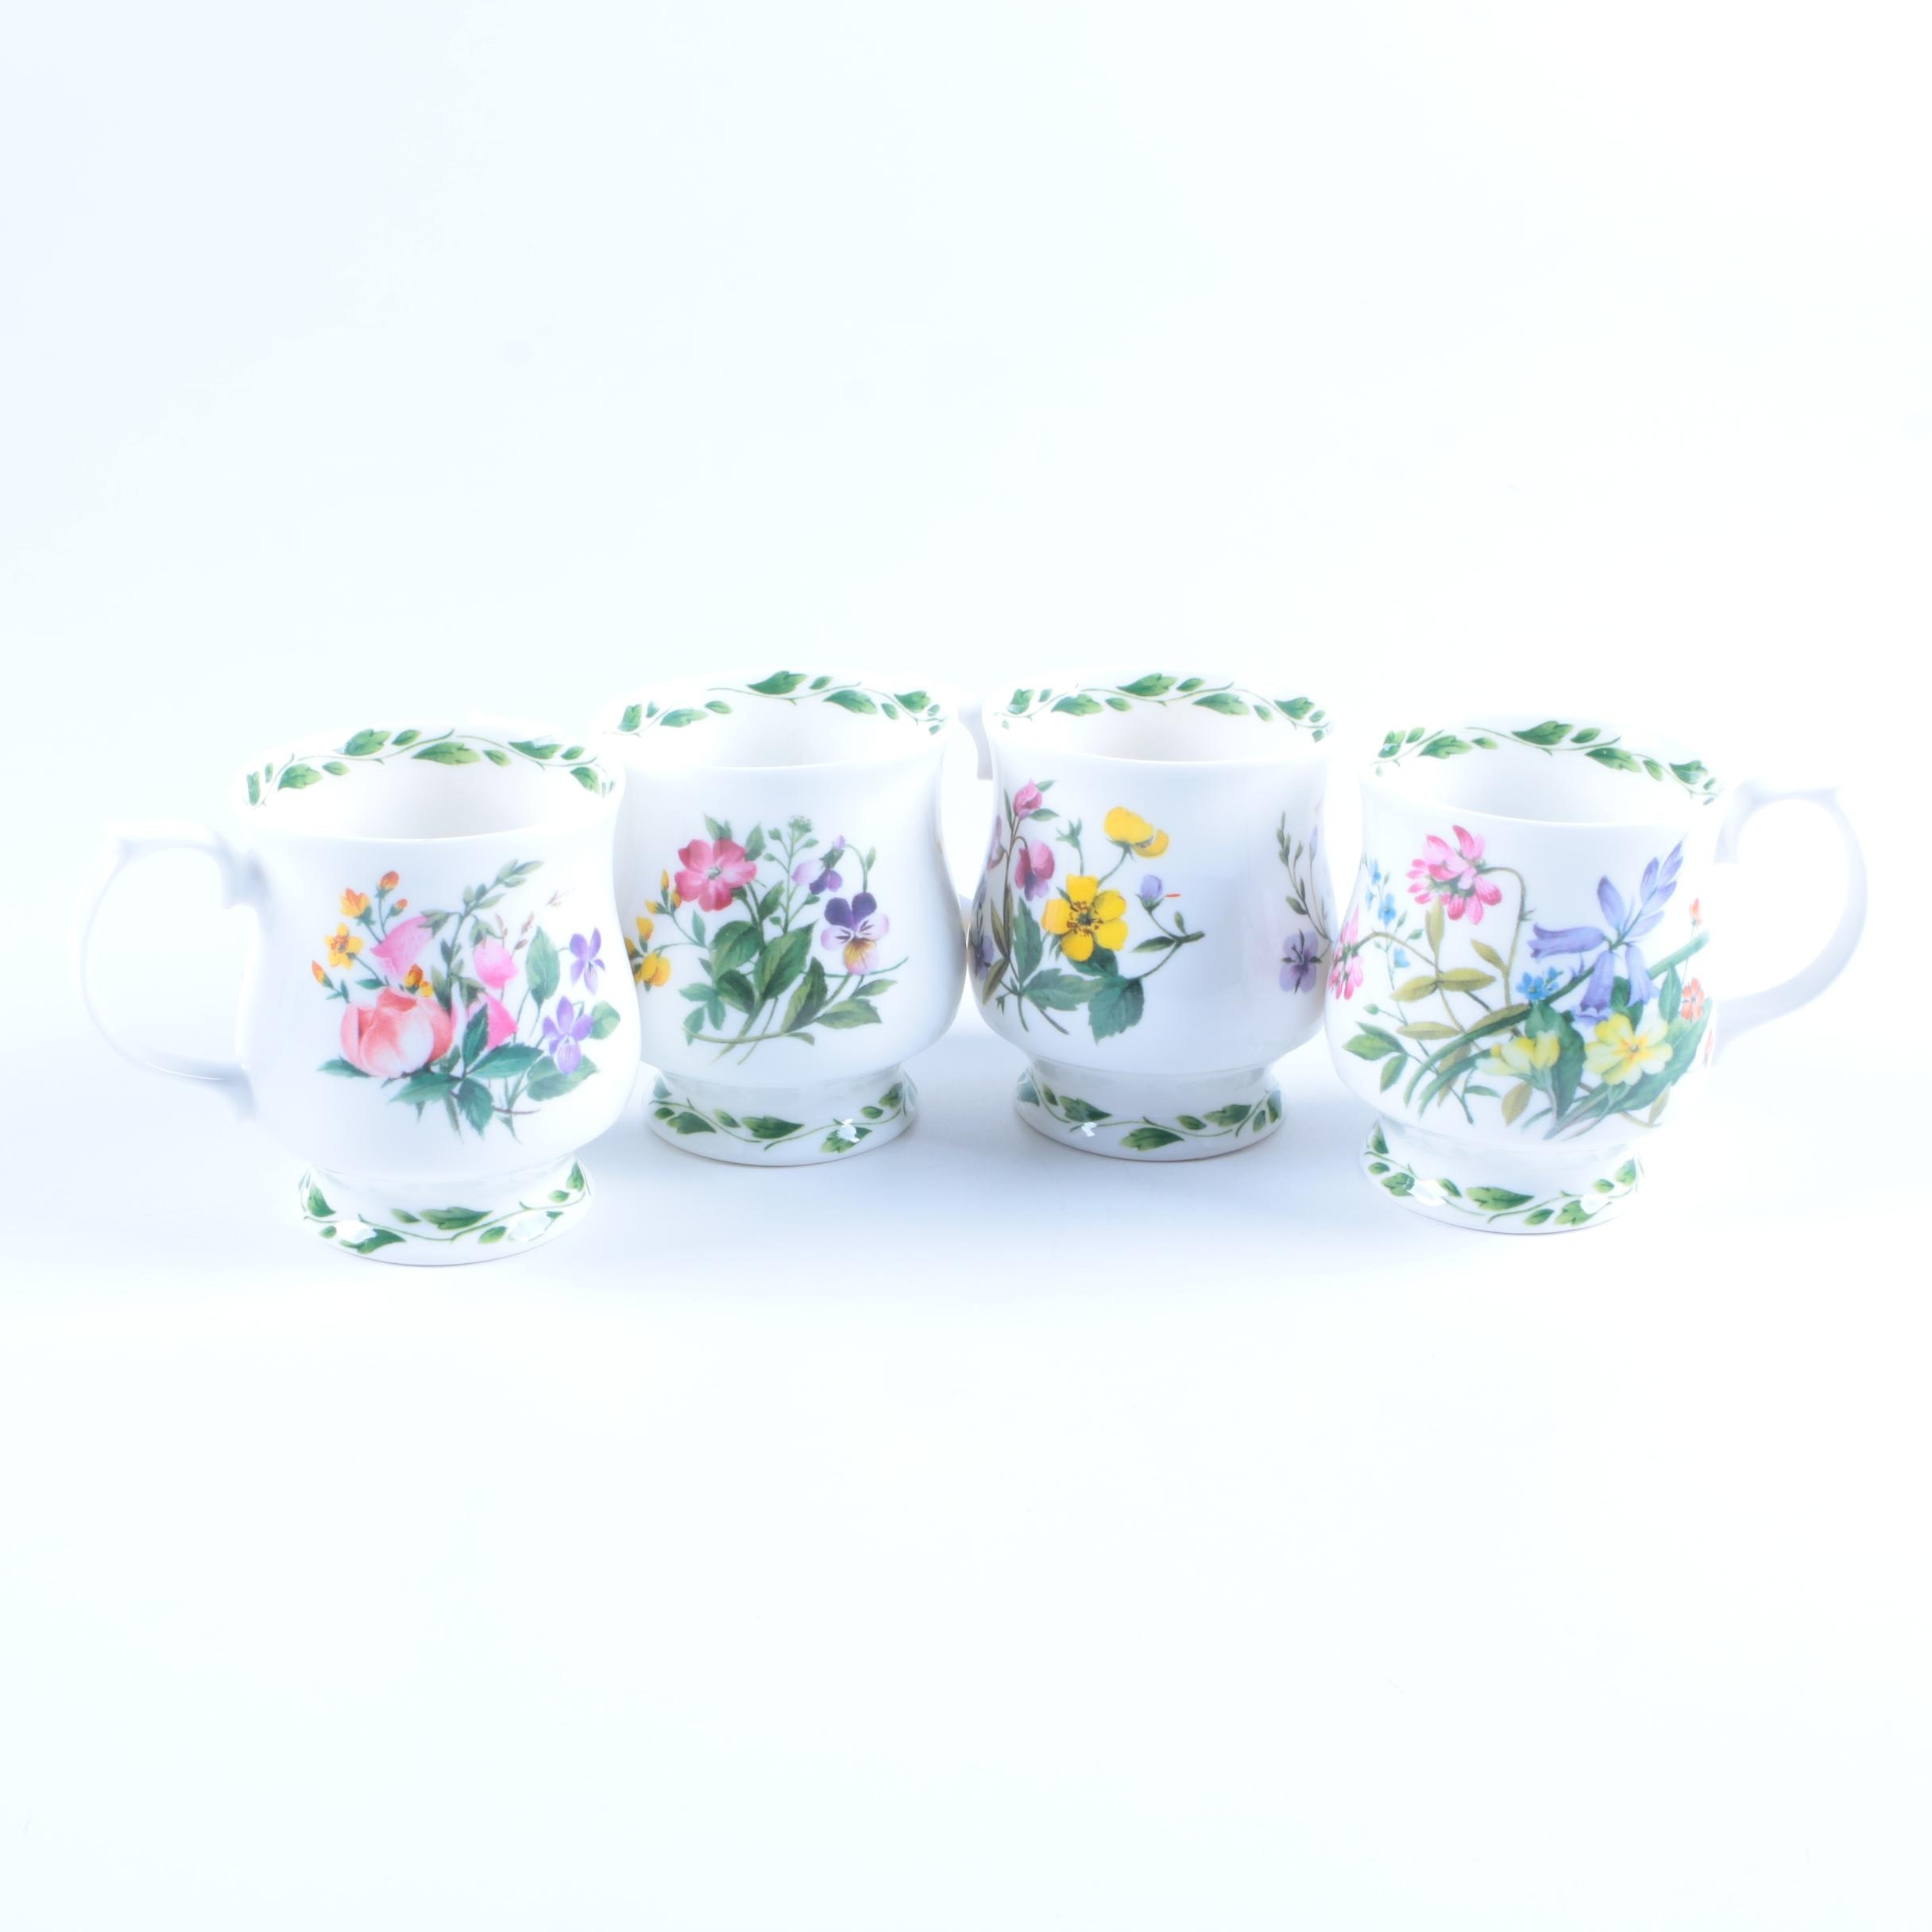 "Rosina-Queen's ""The Garden'"" Footed Mugs by Lilian Snelling"